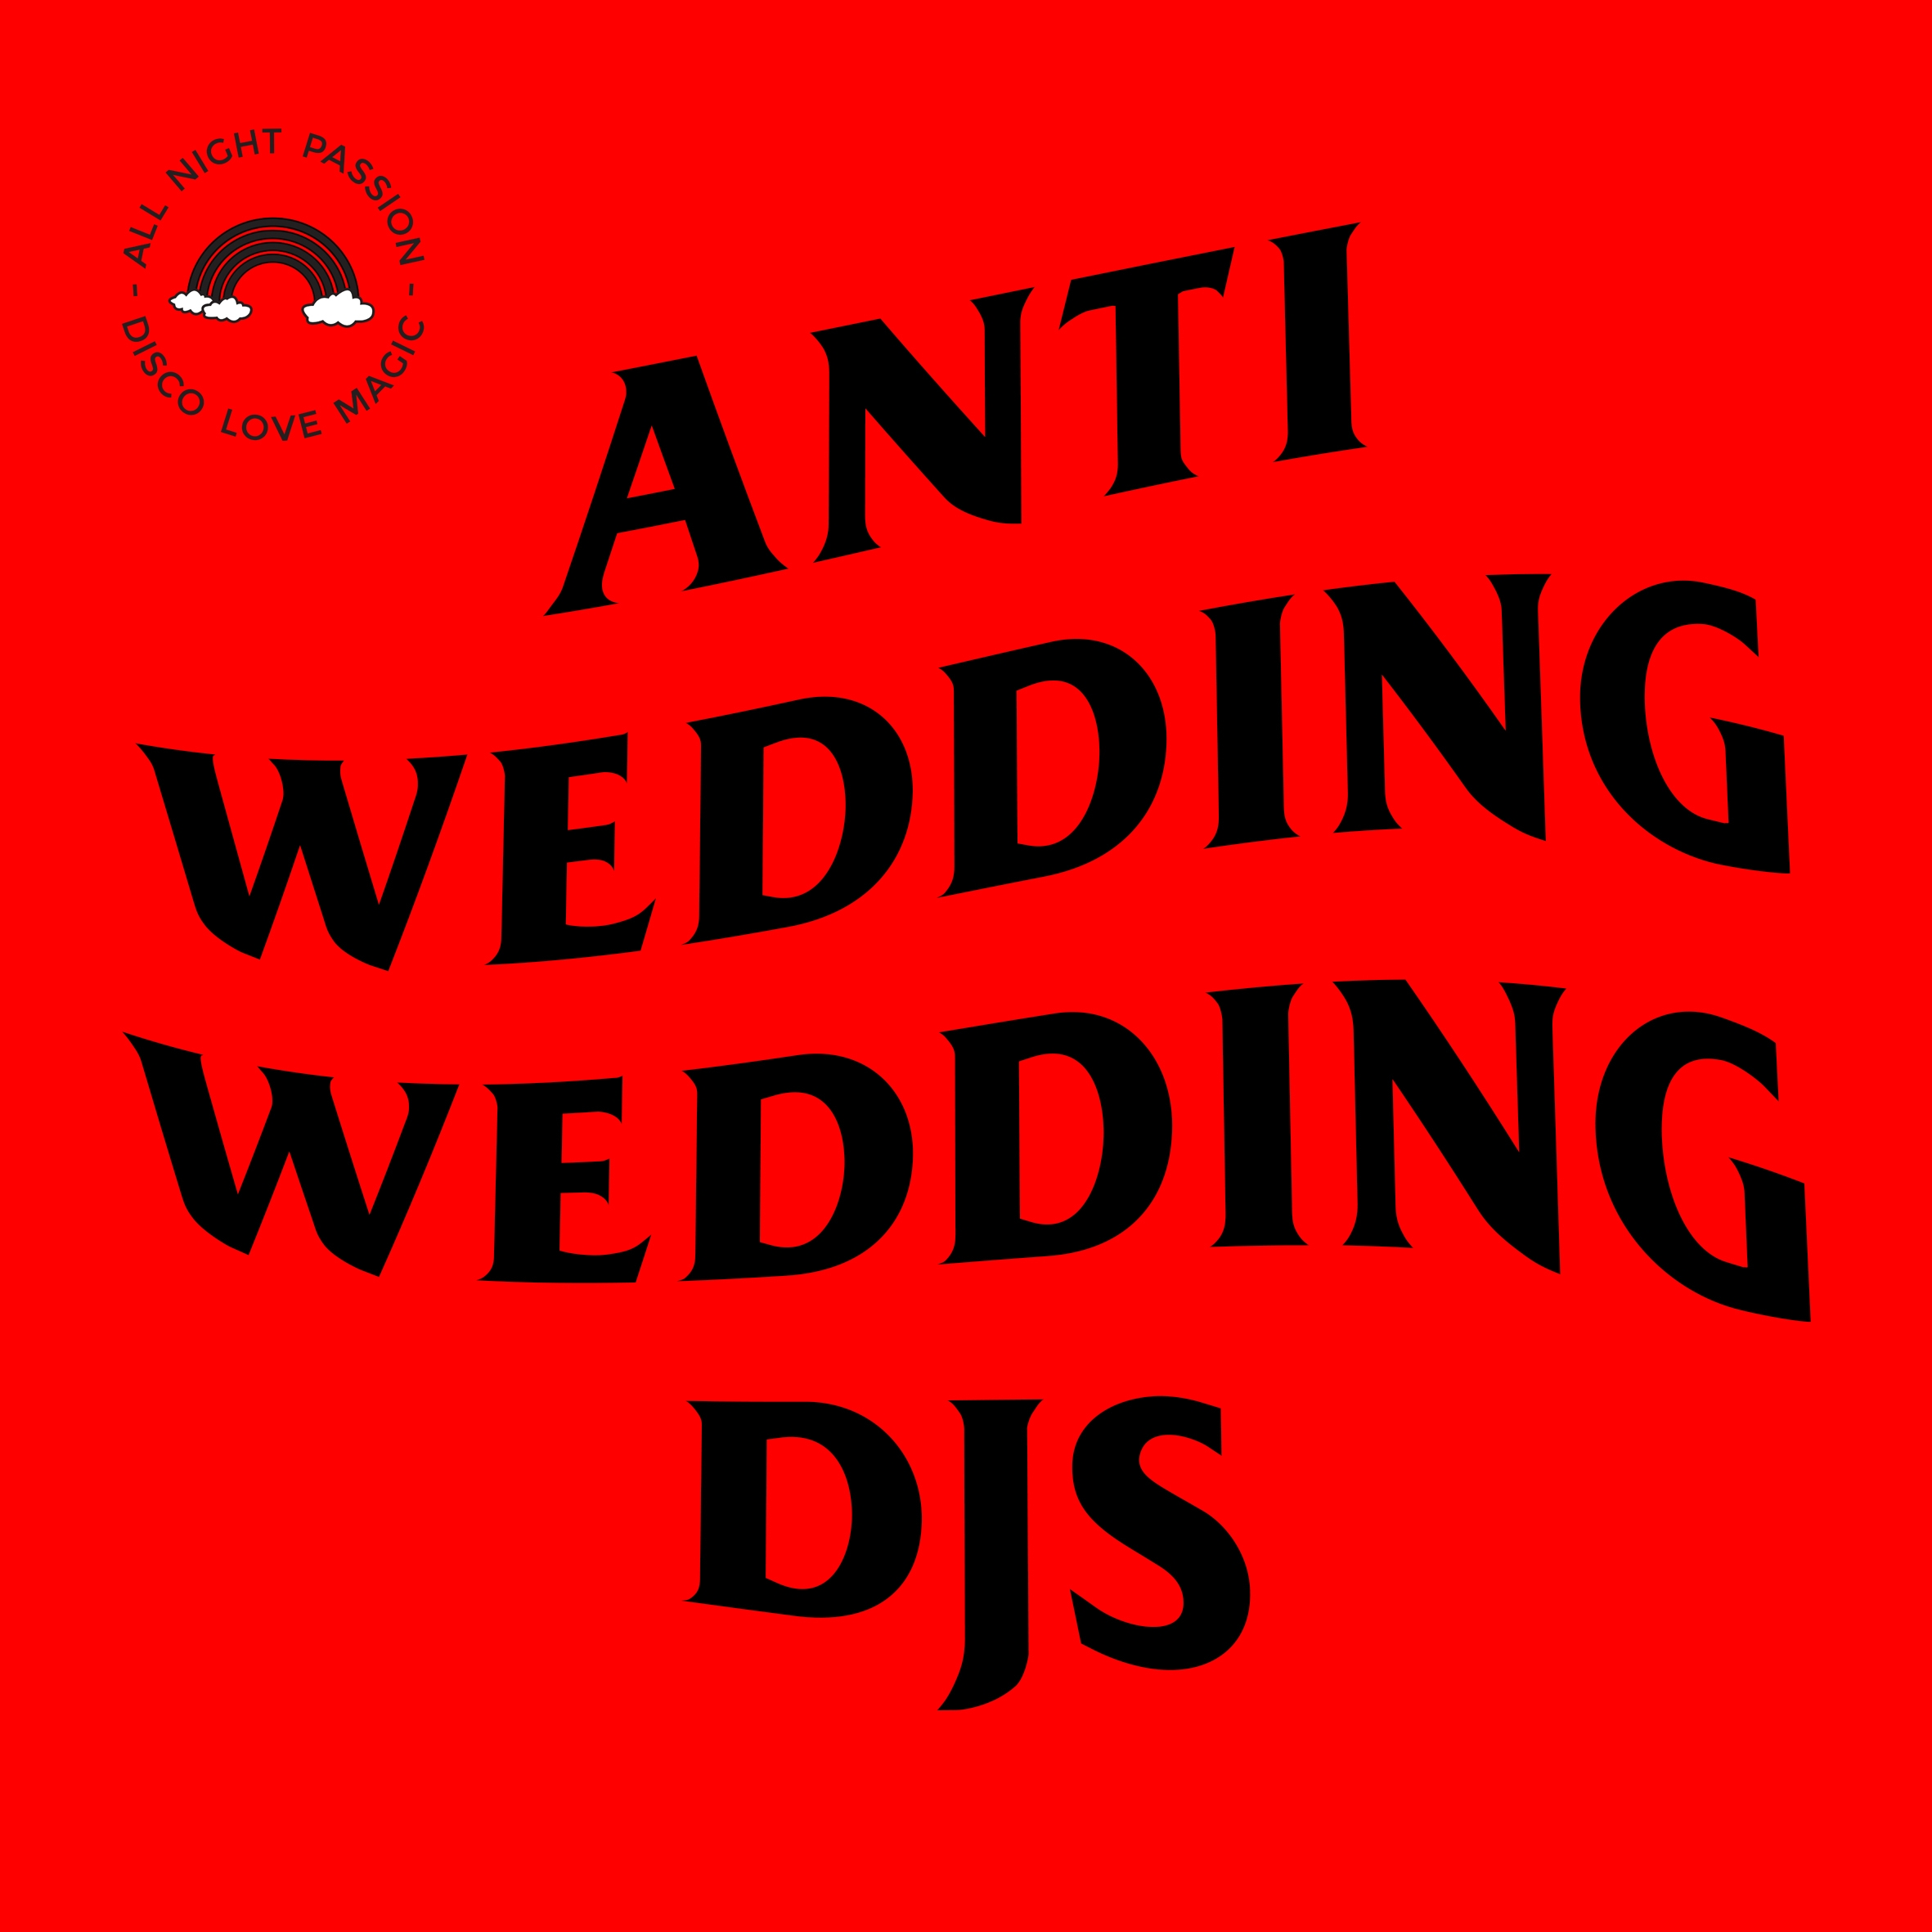 Anti Wedding Wedding DJs